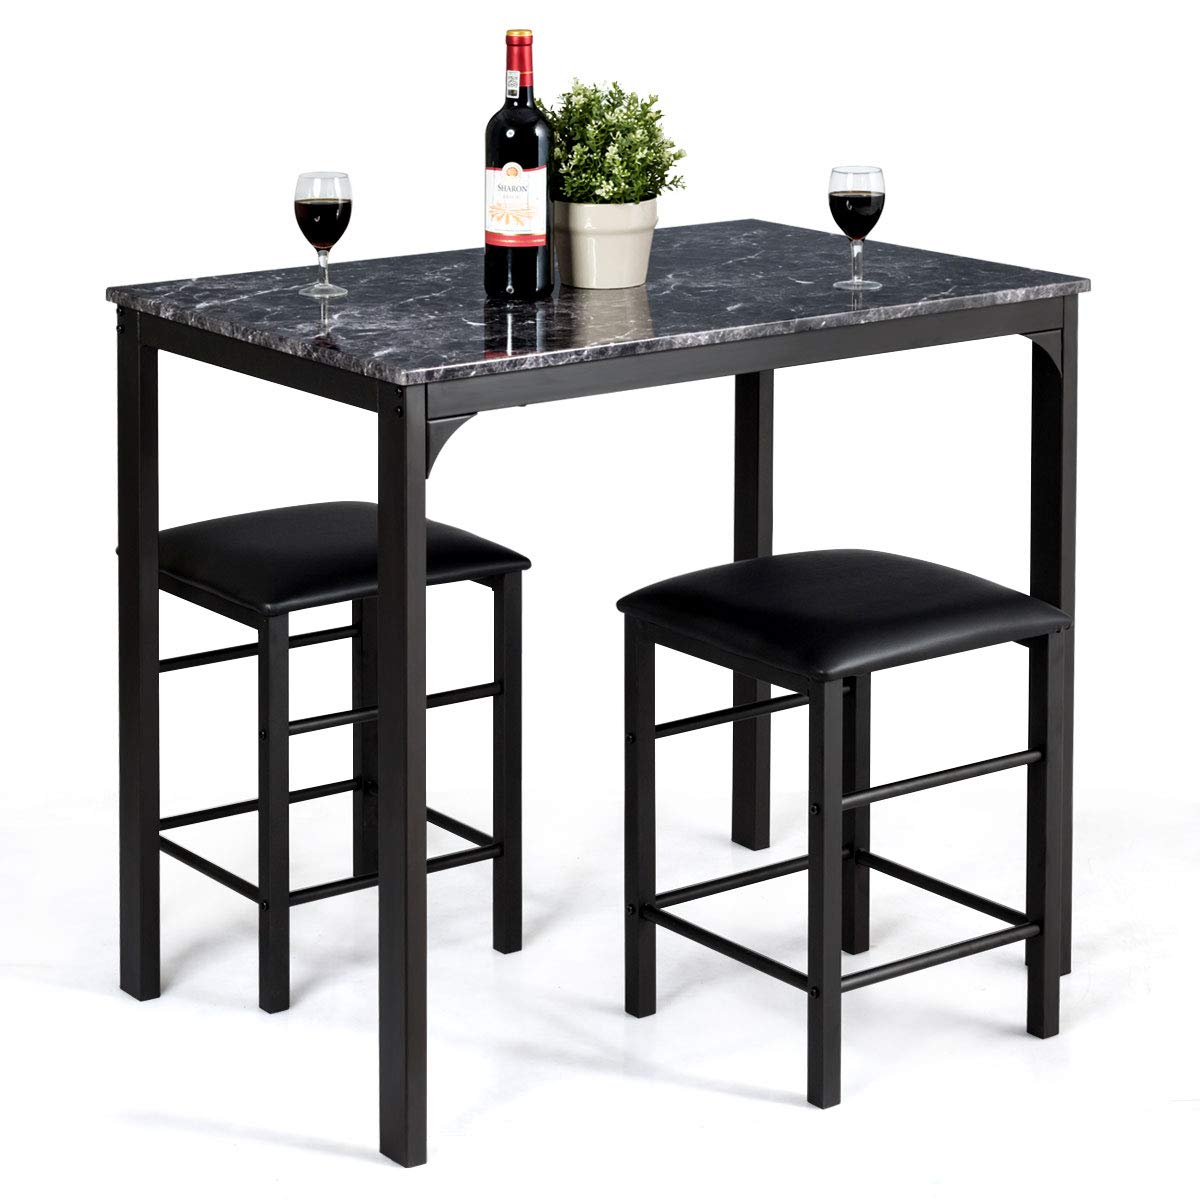 Giantex 3 Pcs Dining Table and Chairs Set with Faux Marble Tabletop 2 Chairs Contemporary Dining Table Set for Home or Hotel Dining Room, Kitchen or Bar (Black) by Giantex